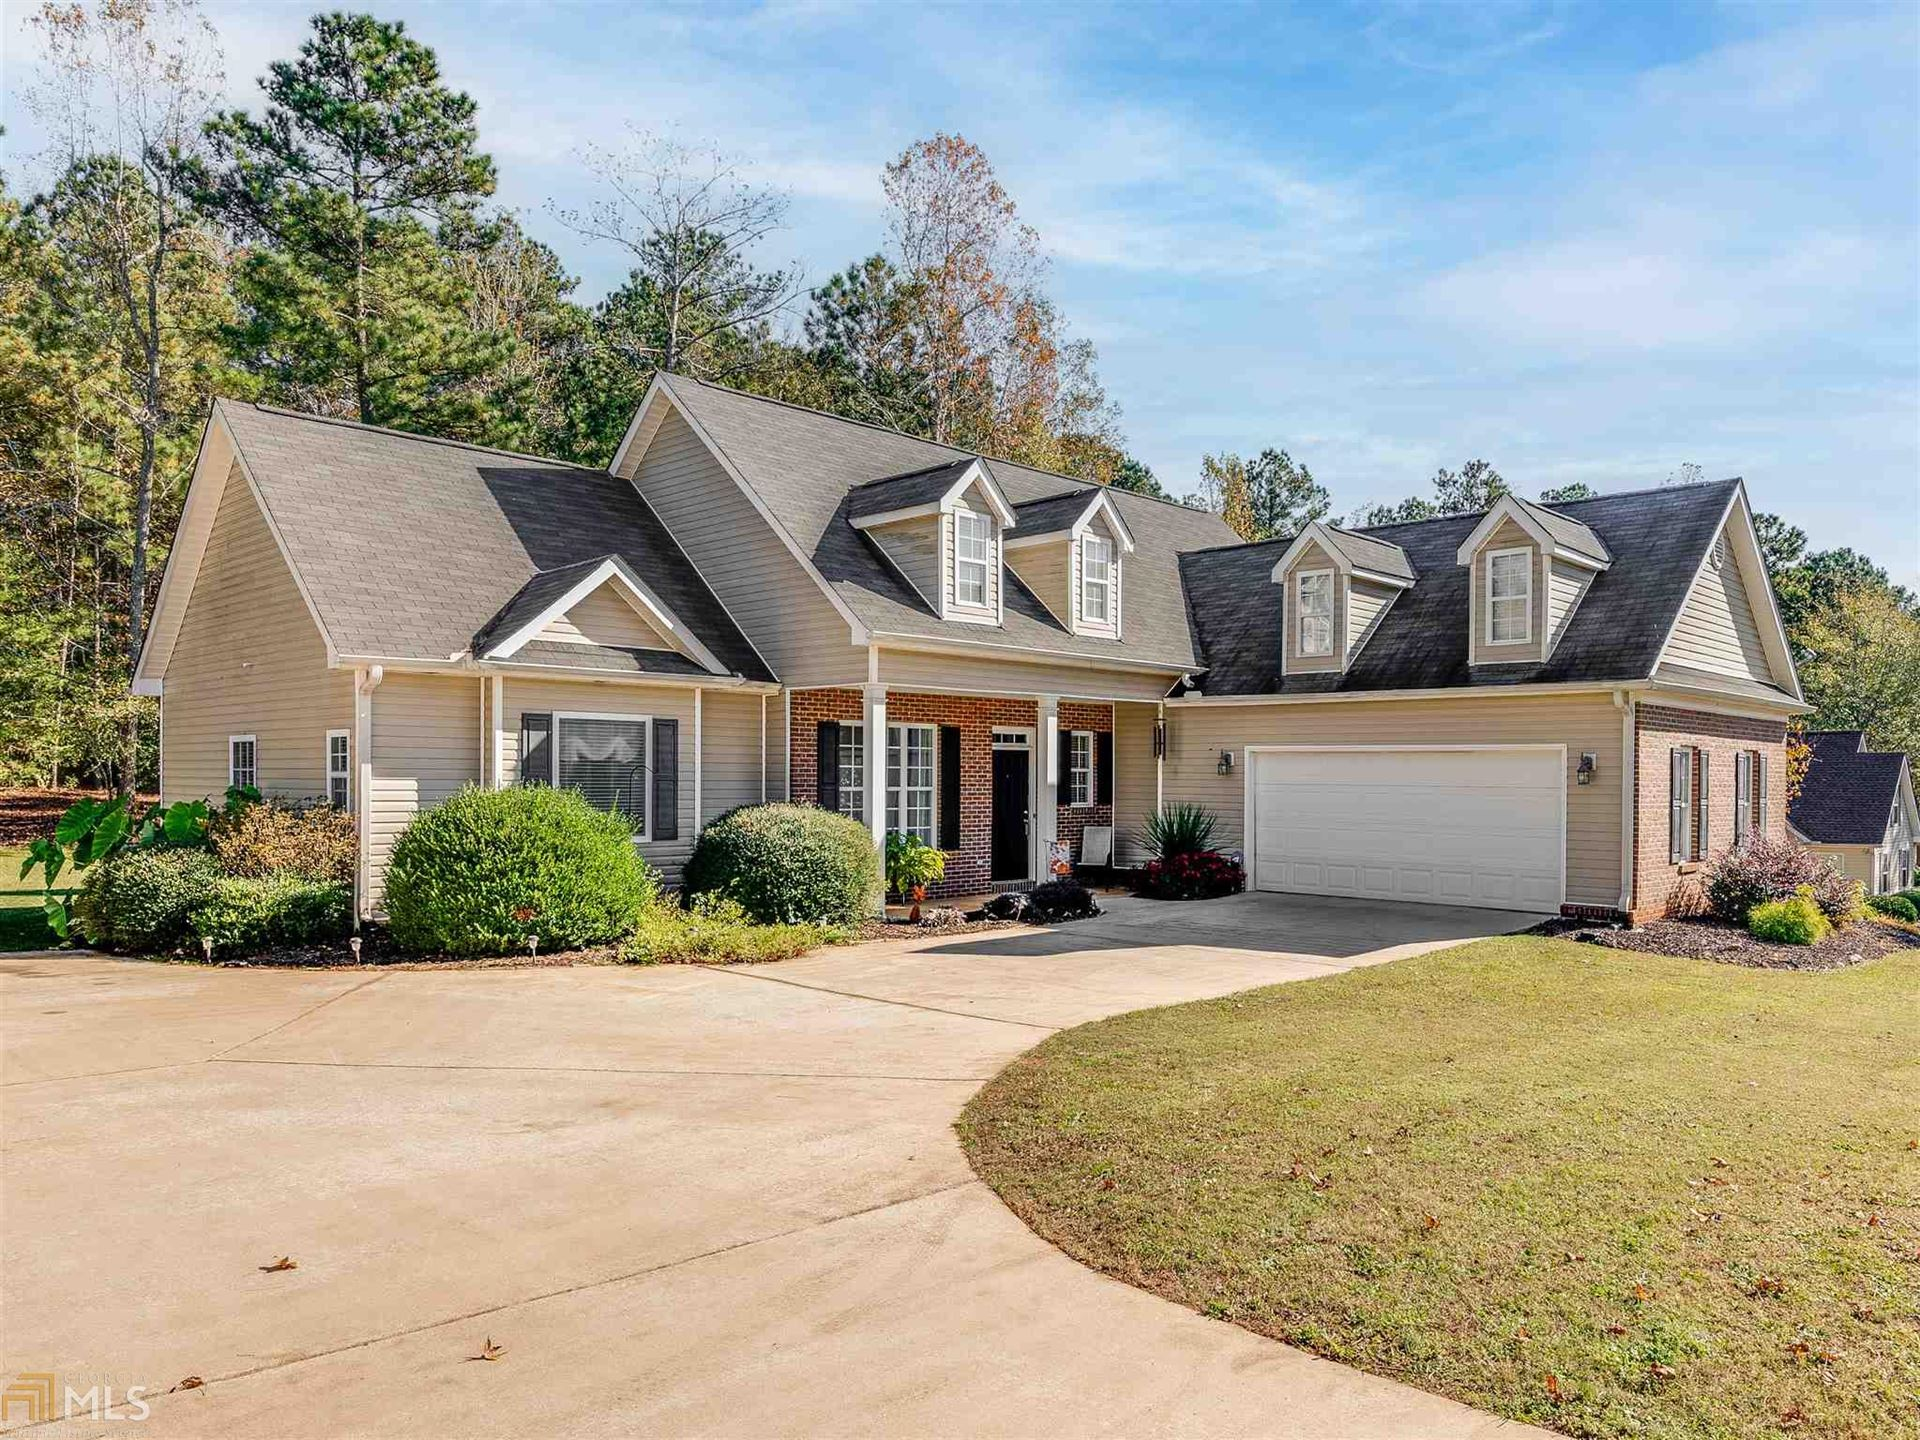 305 Park Chase Ct, Griffin, GA 30224 - #: 8892104